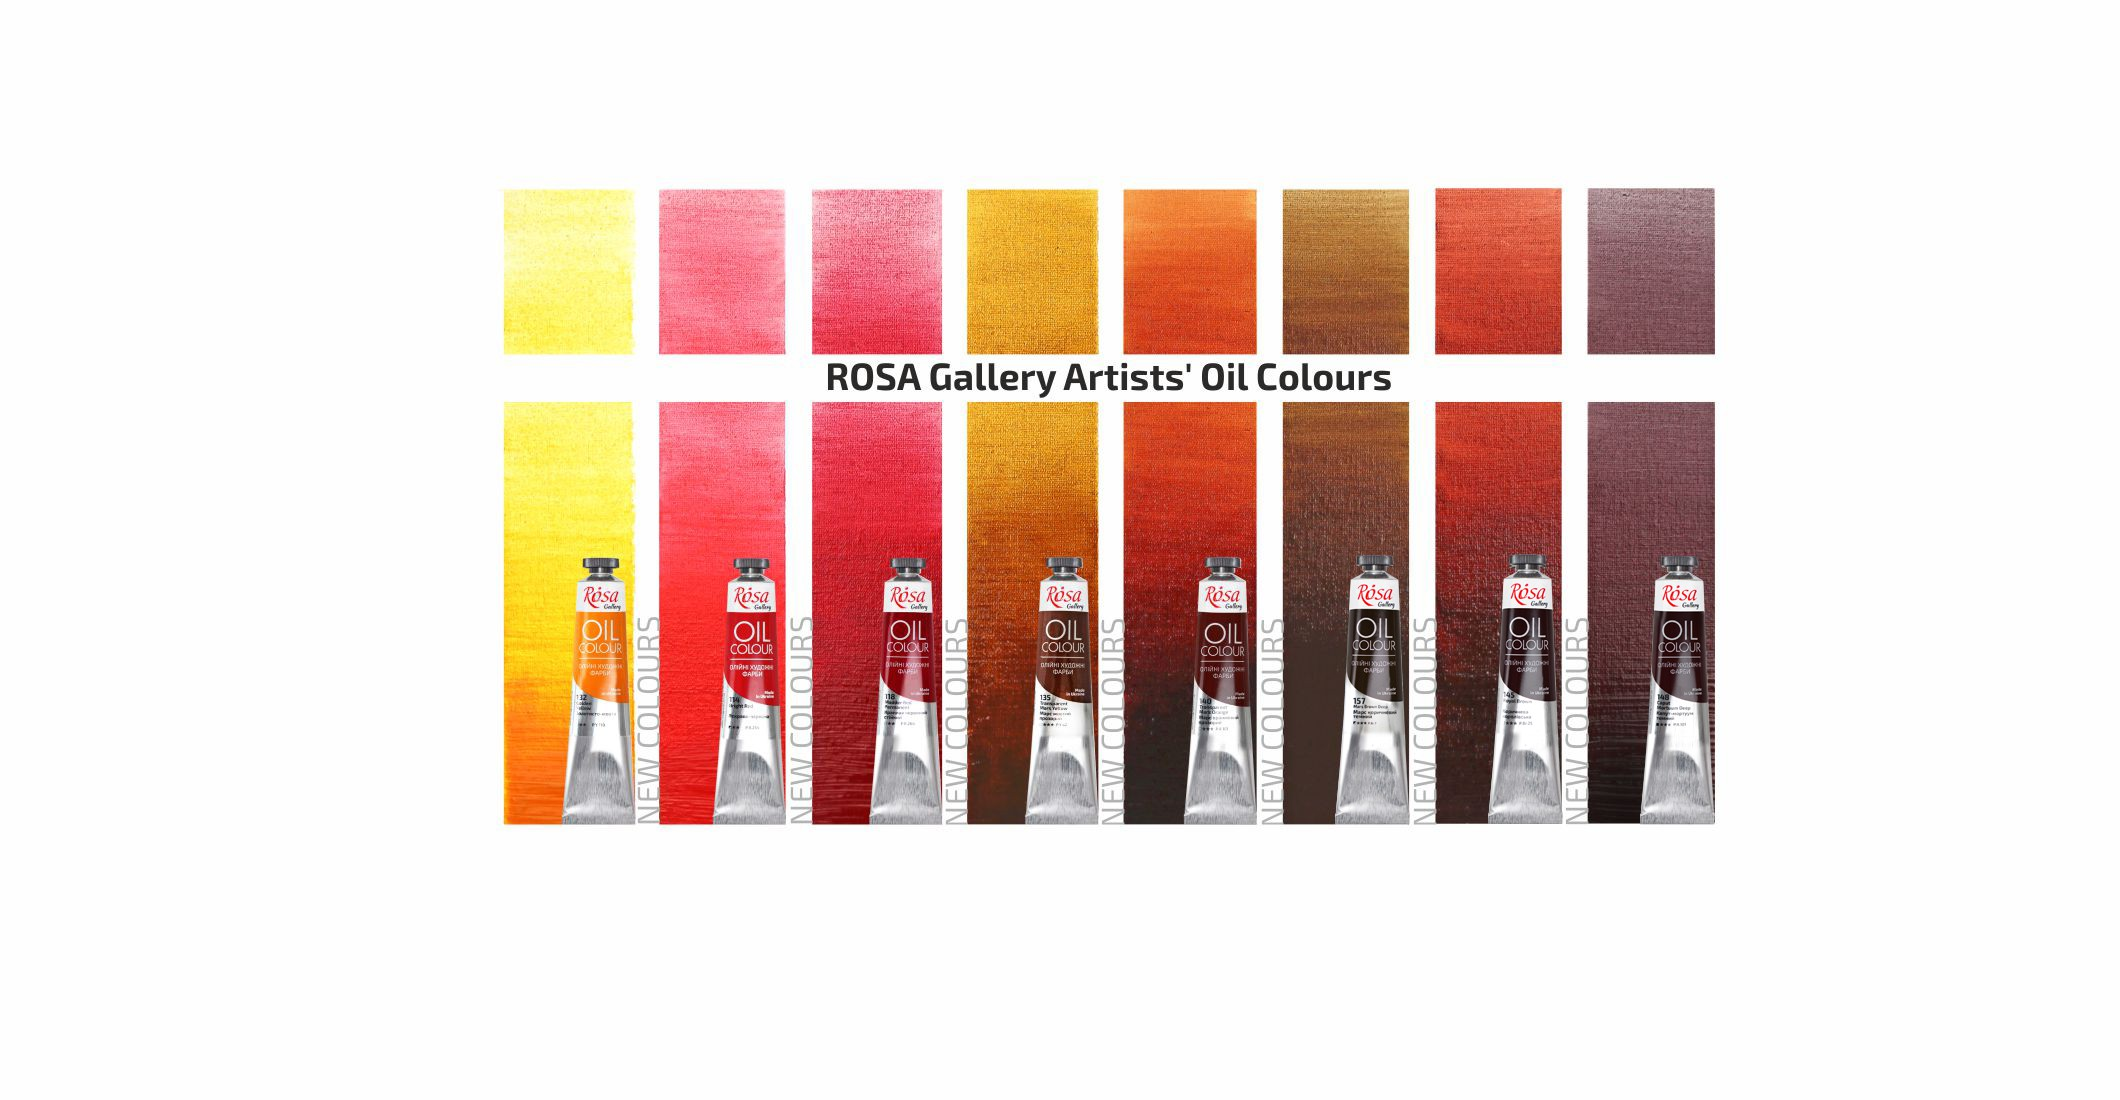 ROSA Gallery Artists' Oil Colours